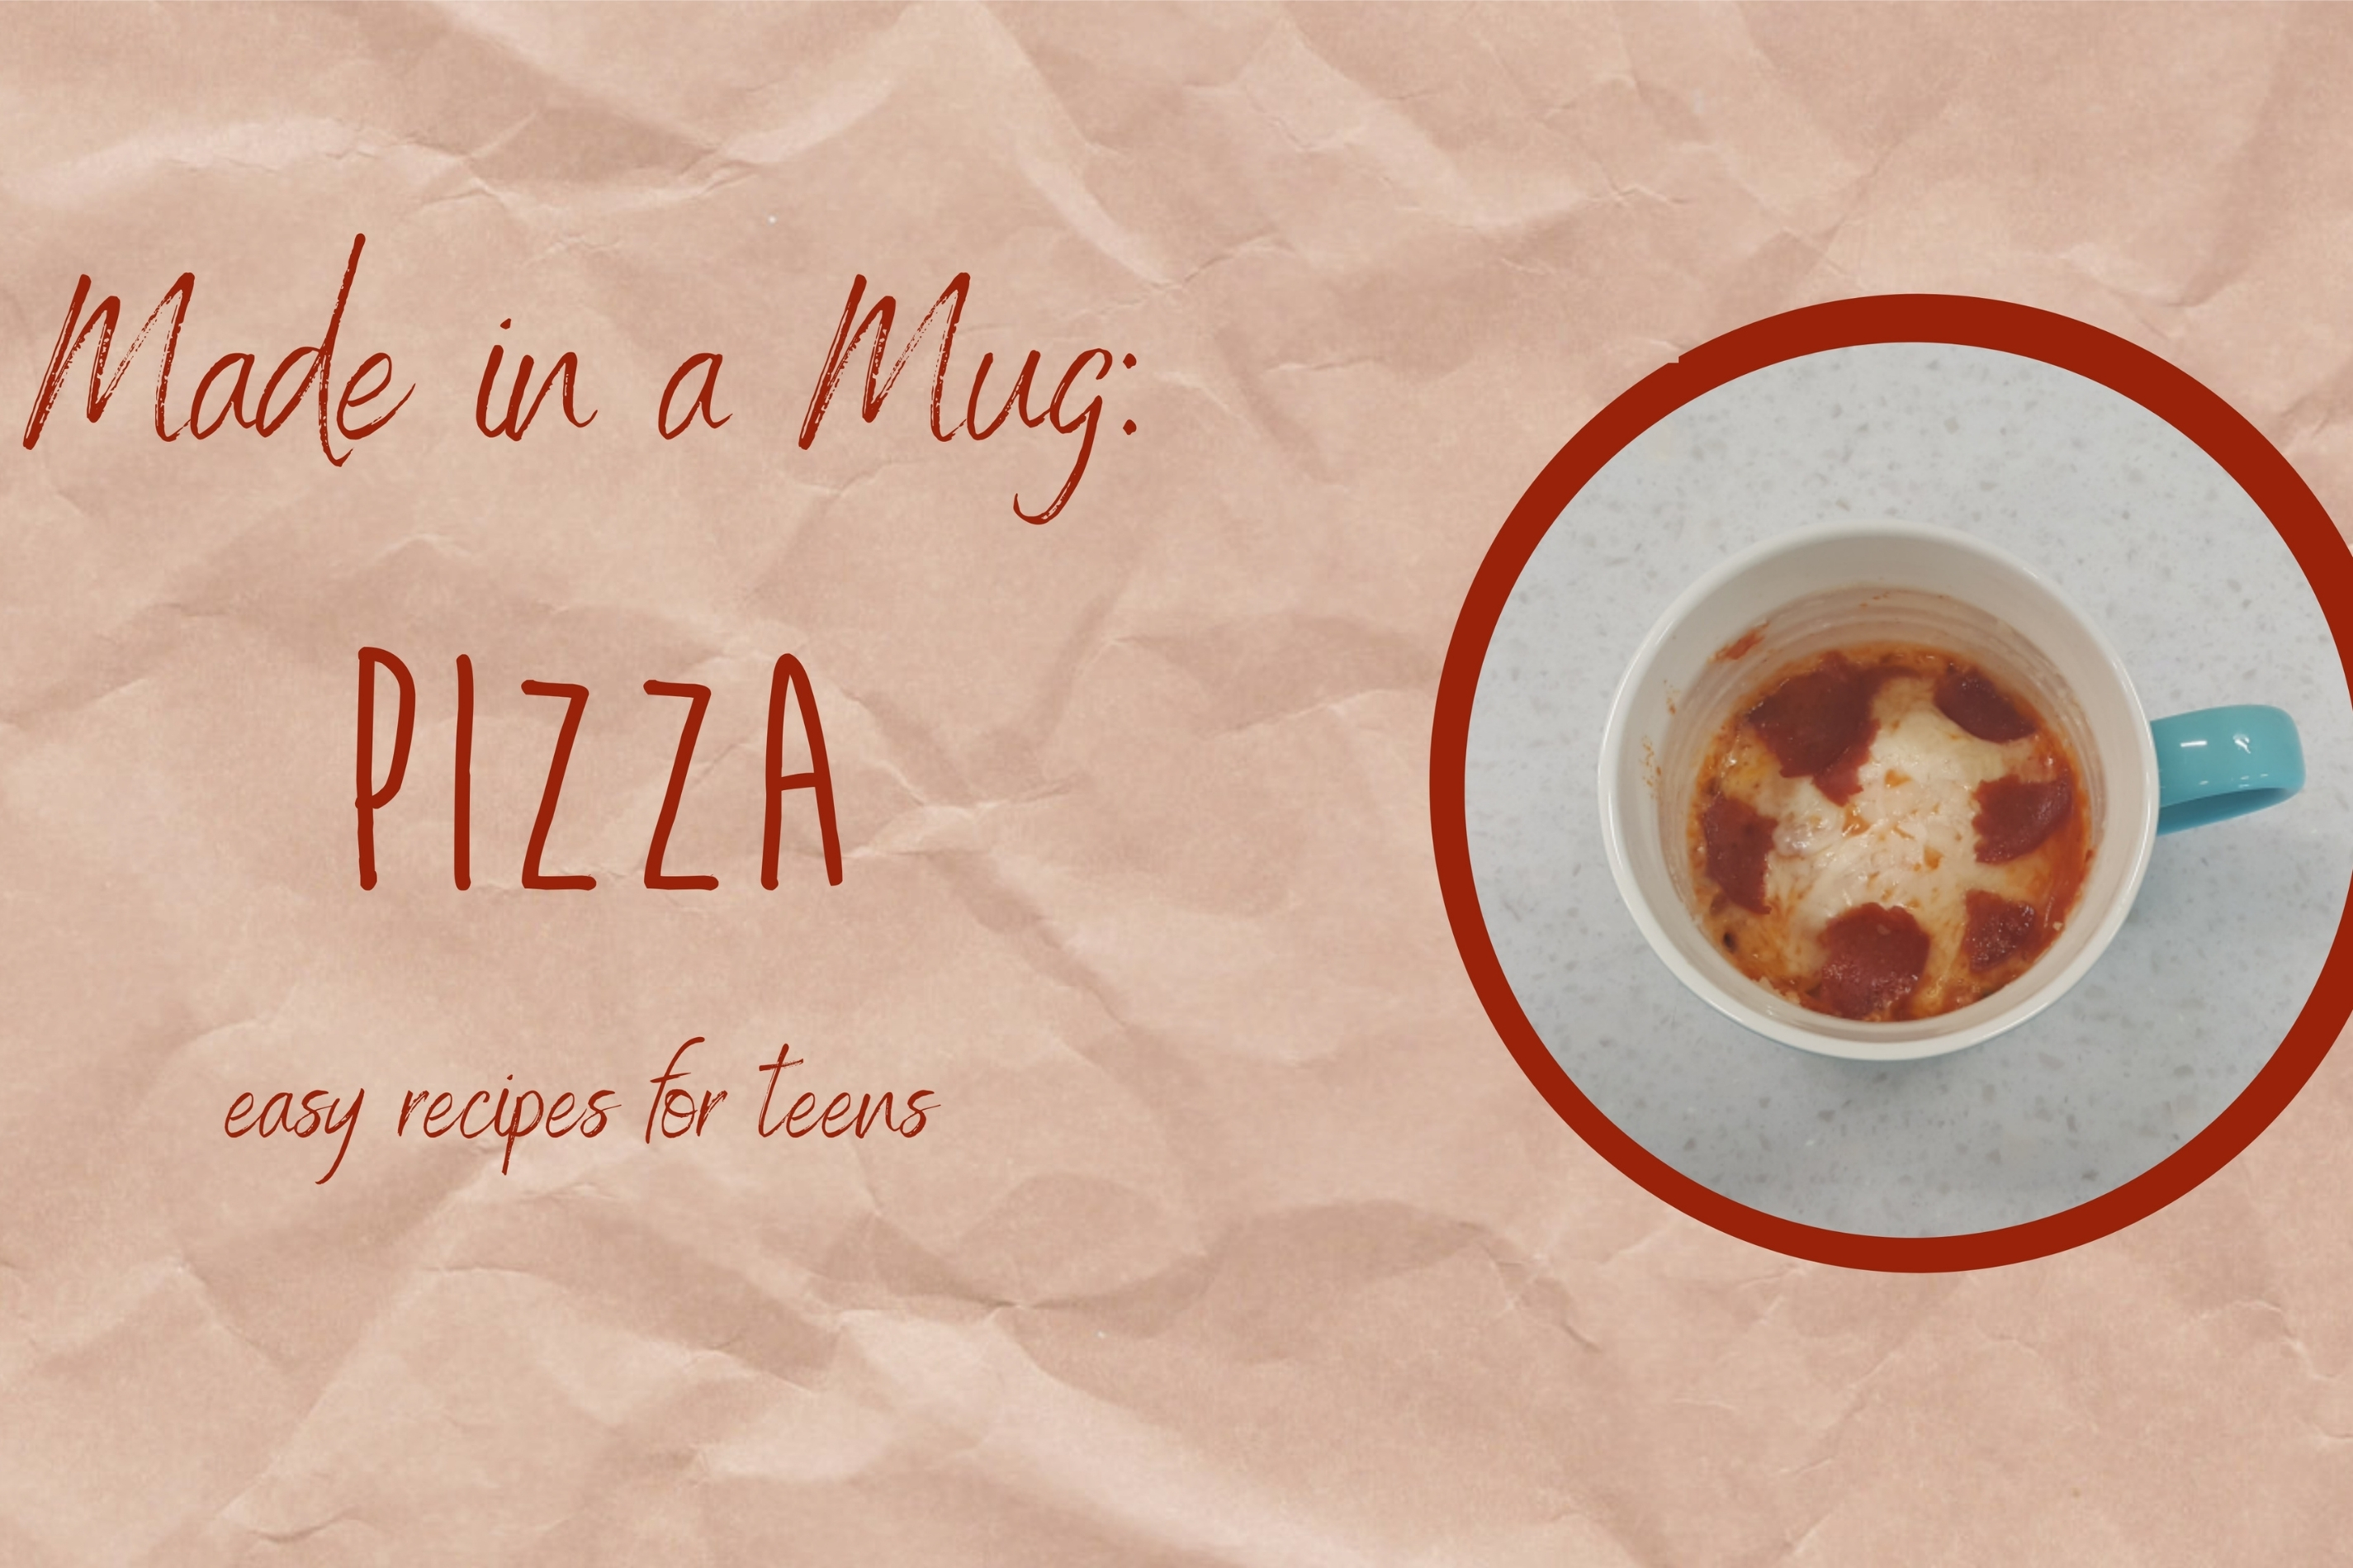 Made in a Mug: Pizza